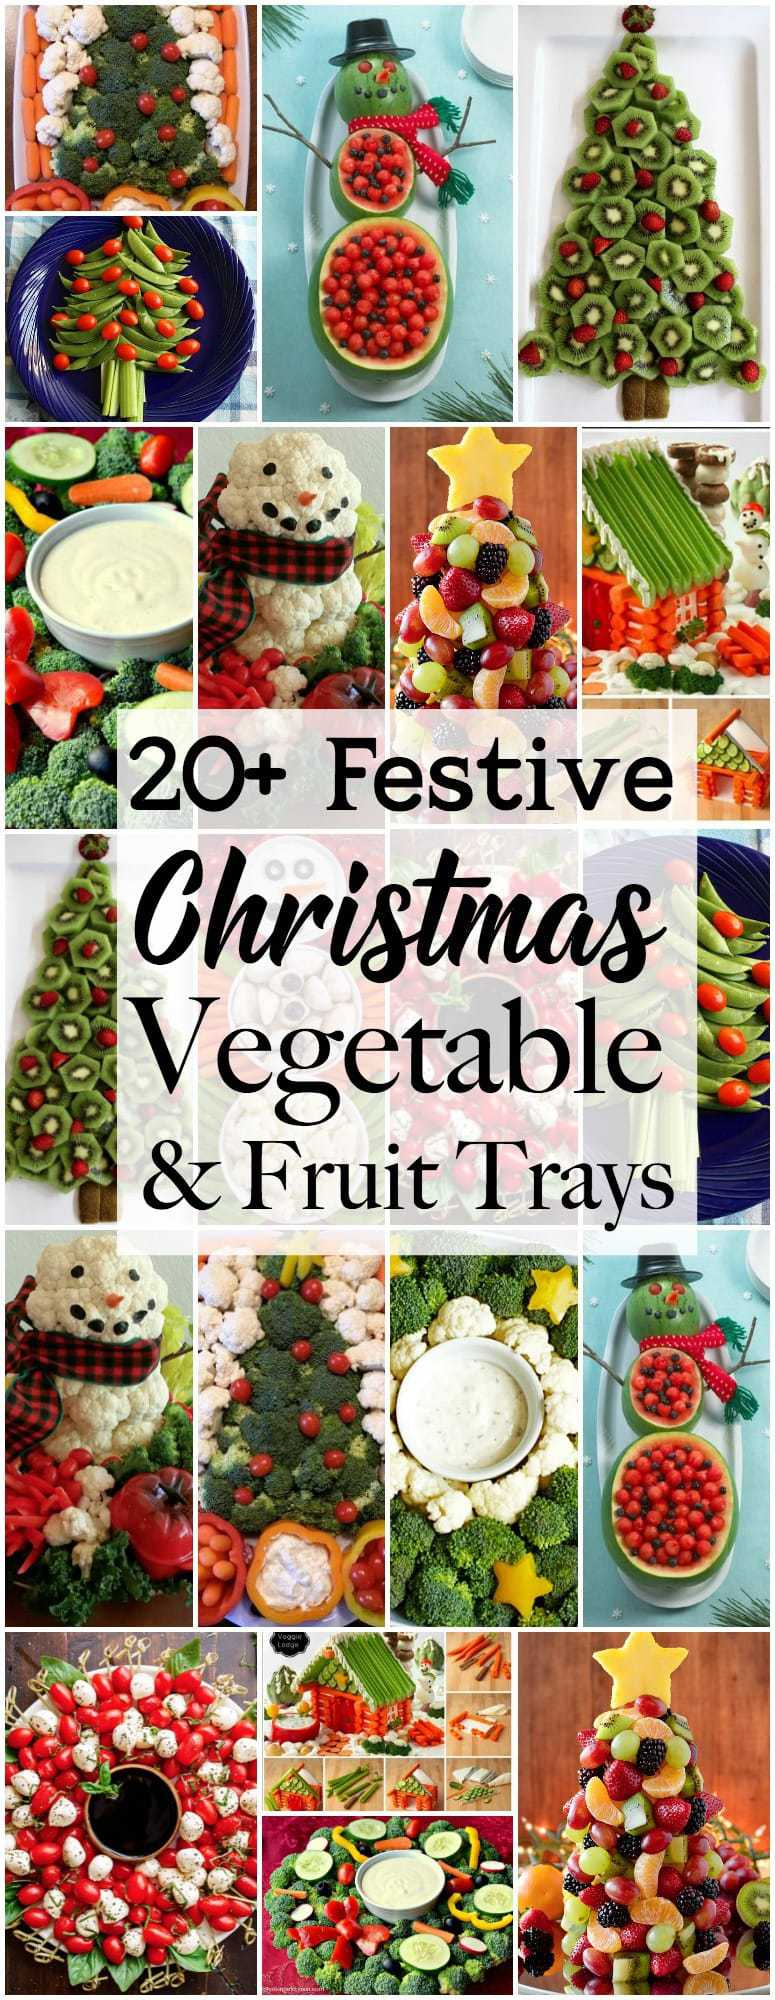 Holiday Vegetable Trays are festive, easy to make, healthy & delicious! Add fun to your Christmas table with one of these great veggie tray ideas. Fun fruit tray ideas also featured!